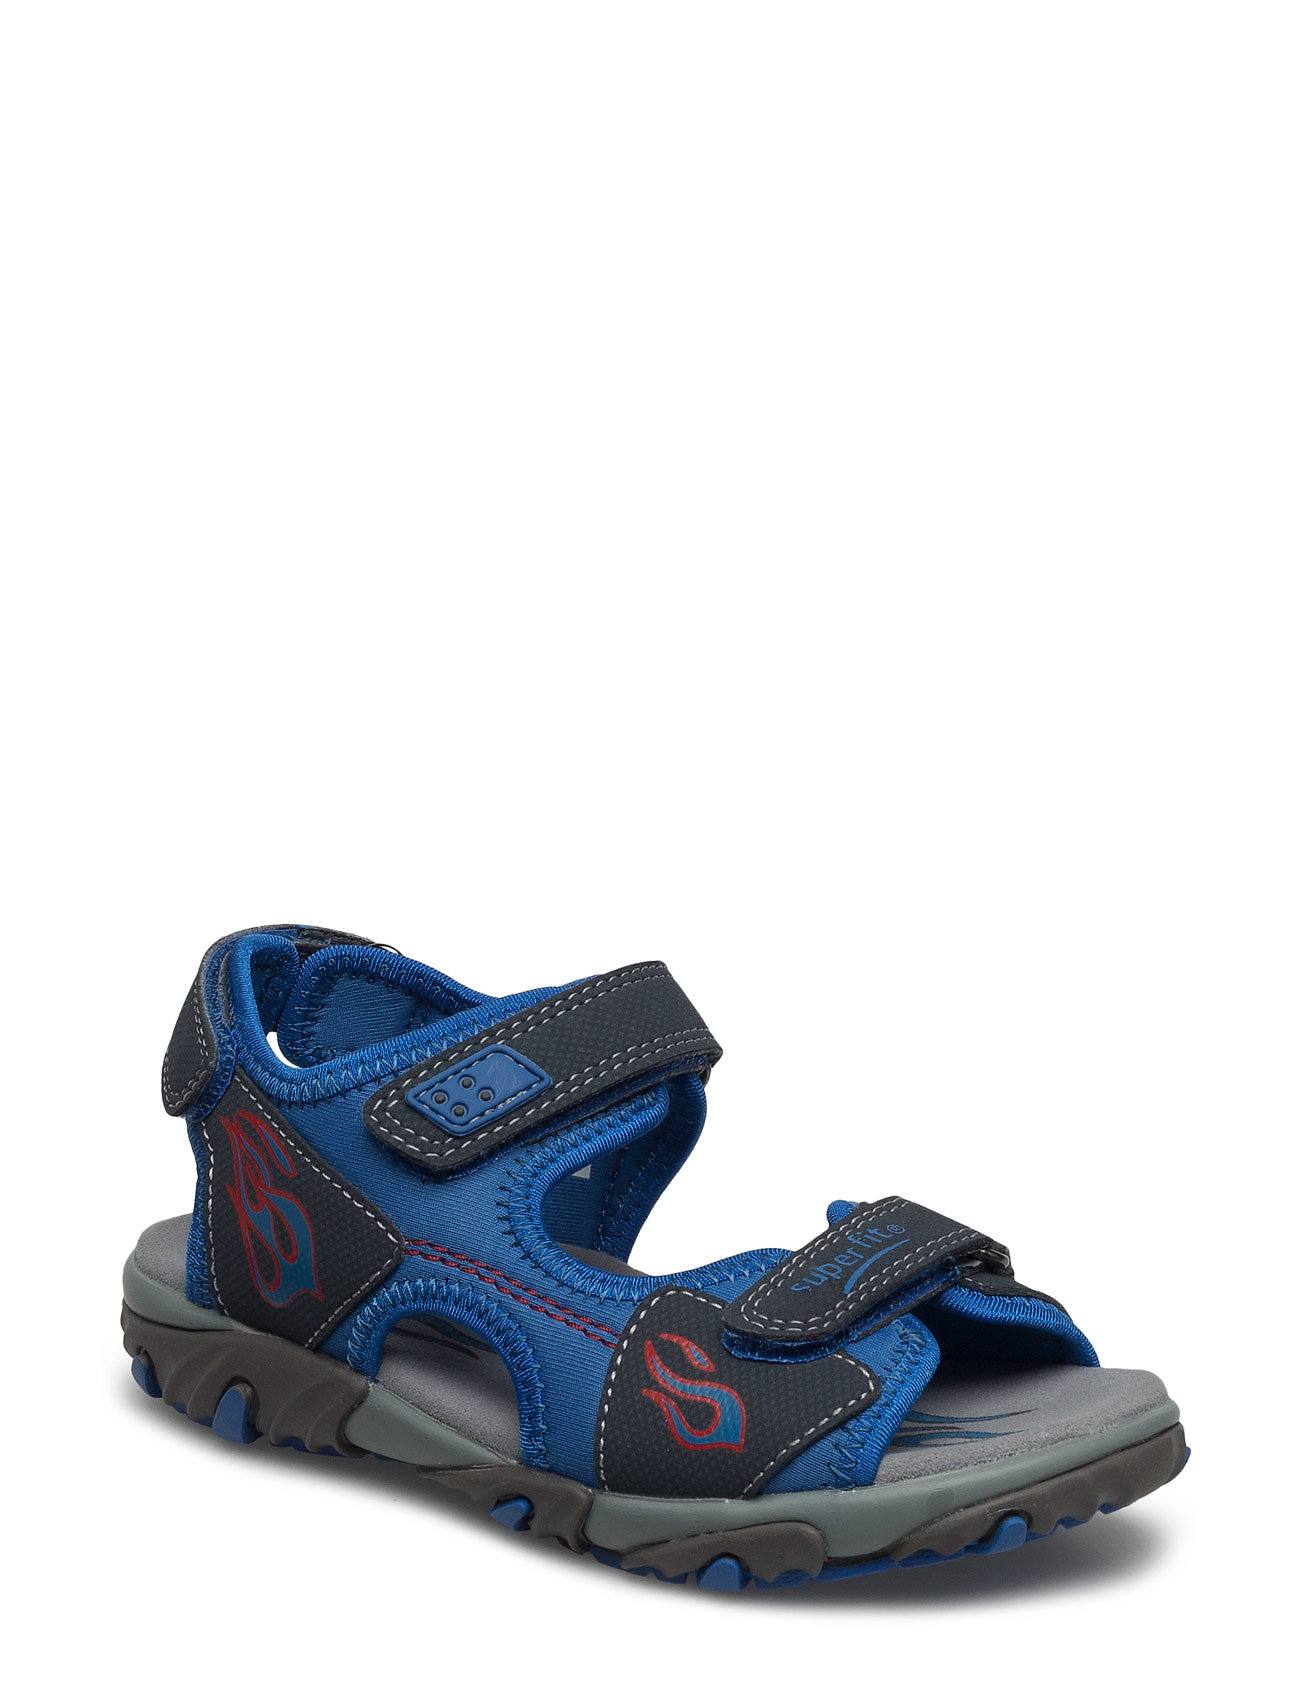 Mike 2 Sandals Superfit Sandaler til Børn i